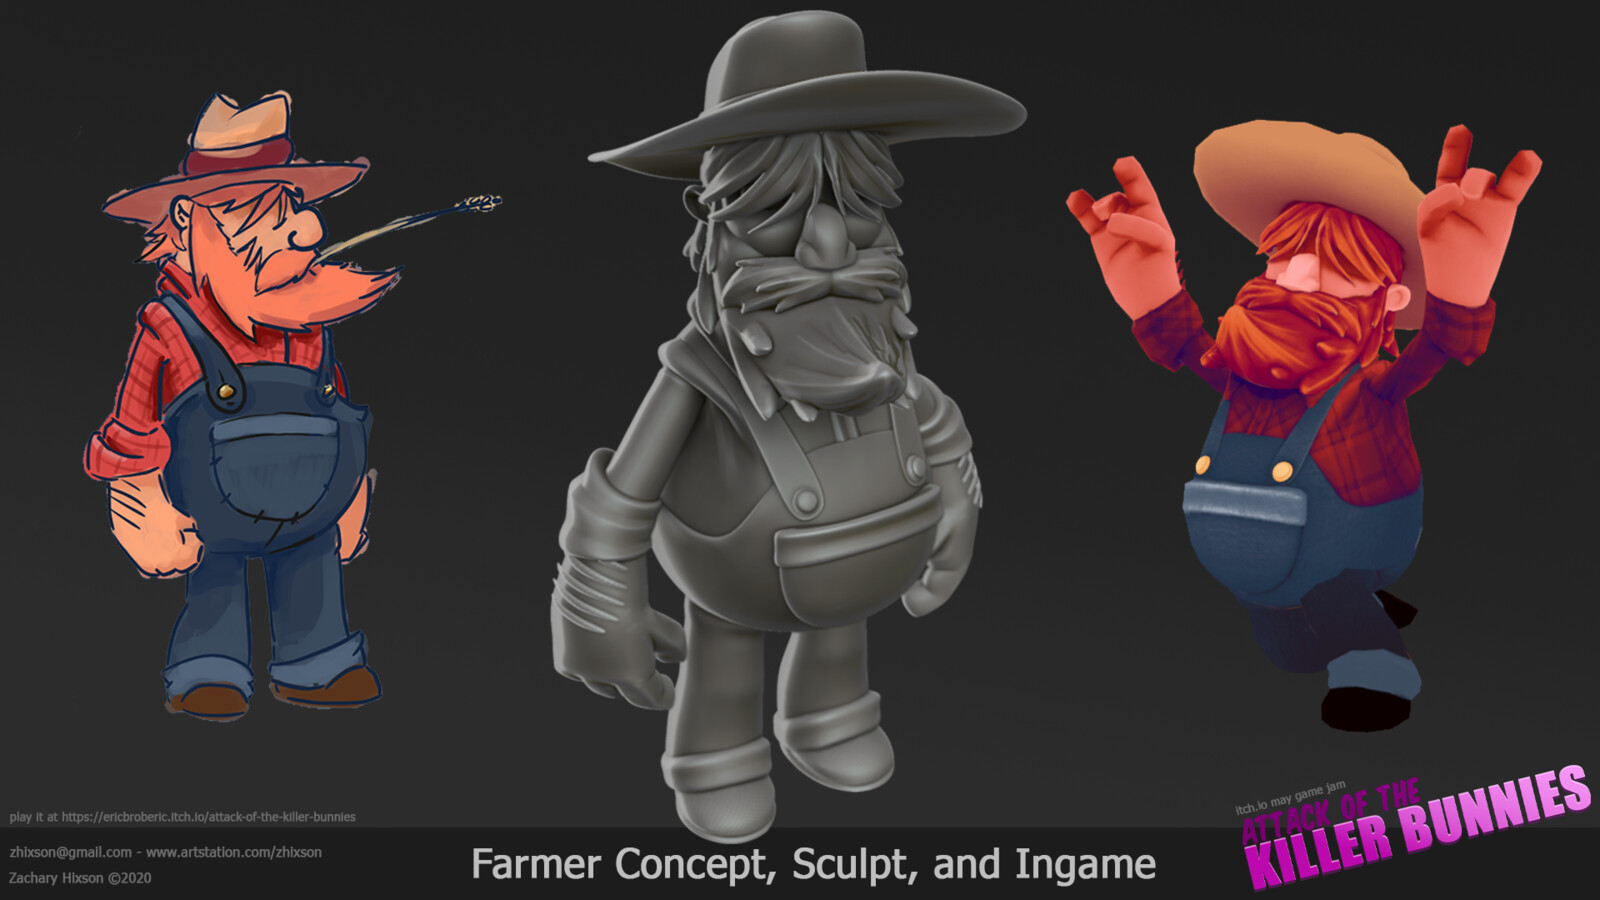 This is the player character. I drew the concept (bleh), sculpted the character in ZBrush, did the retopo in 3D-Coat, and texturing was done in Photoshop. The rigging and animation came from Mixamo.